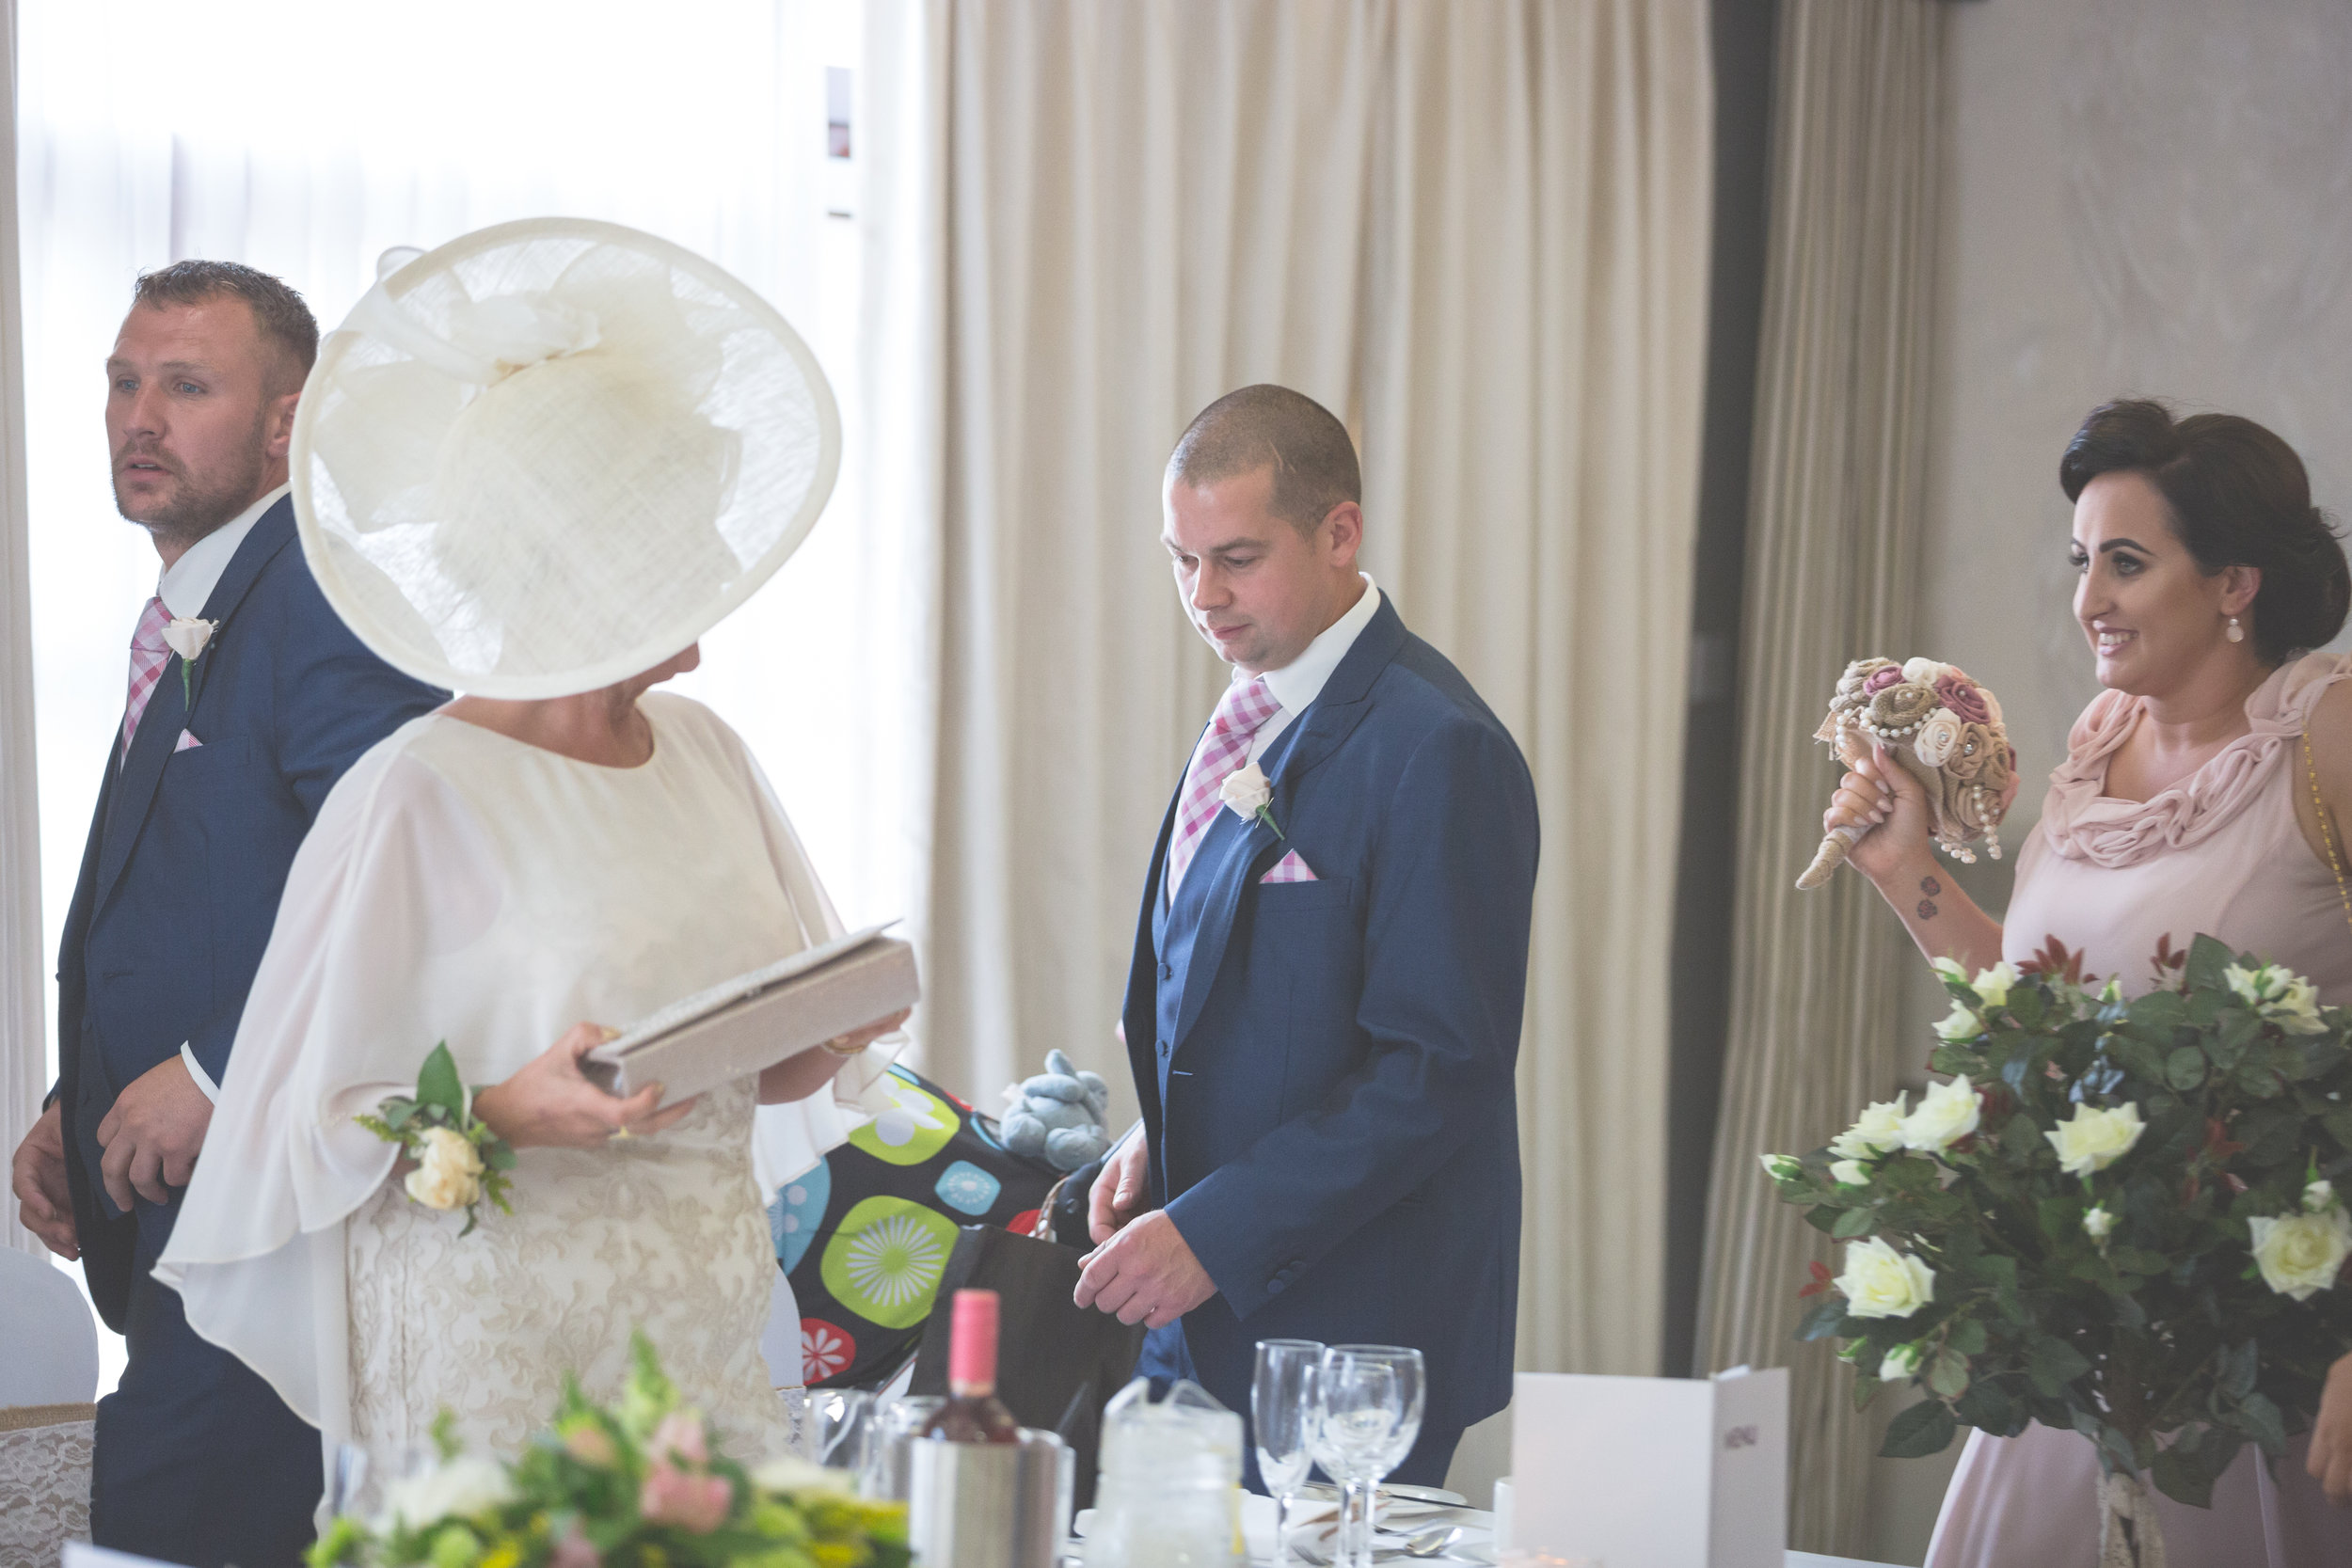 Antoinette & Stephen - Speeches | Brian McEwan Photography | Wedding Photographer Northern Ireland 11.jpg